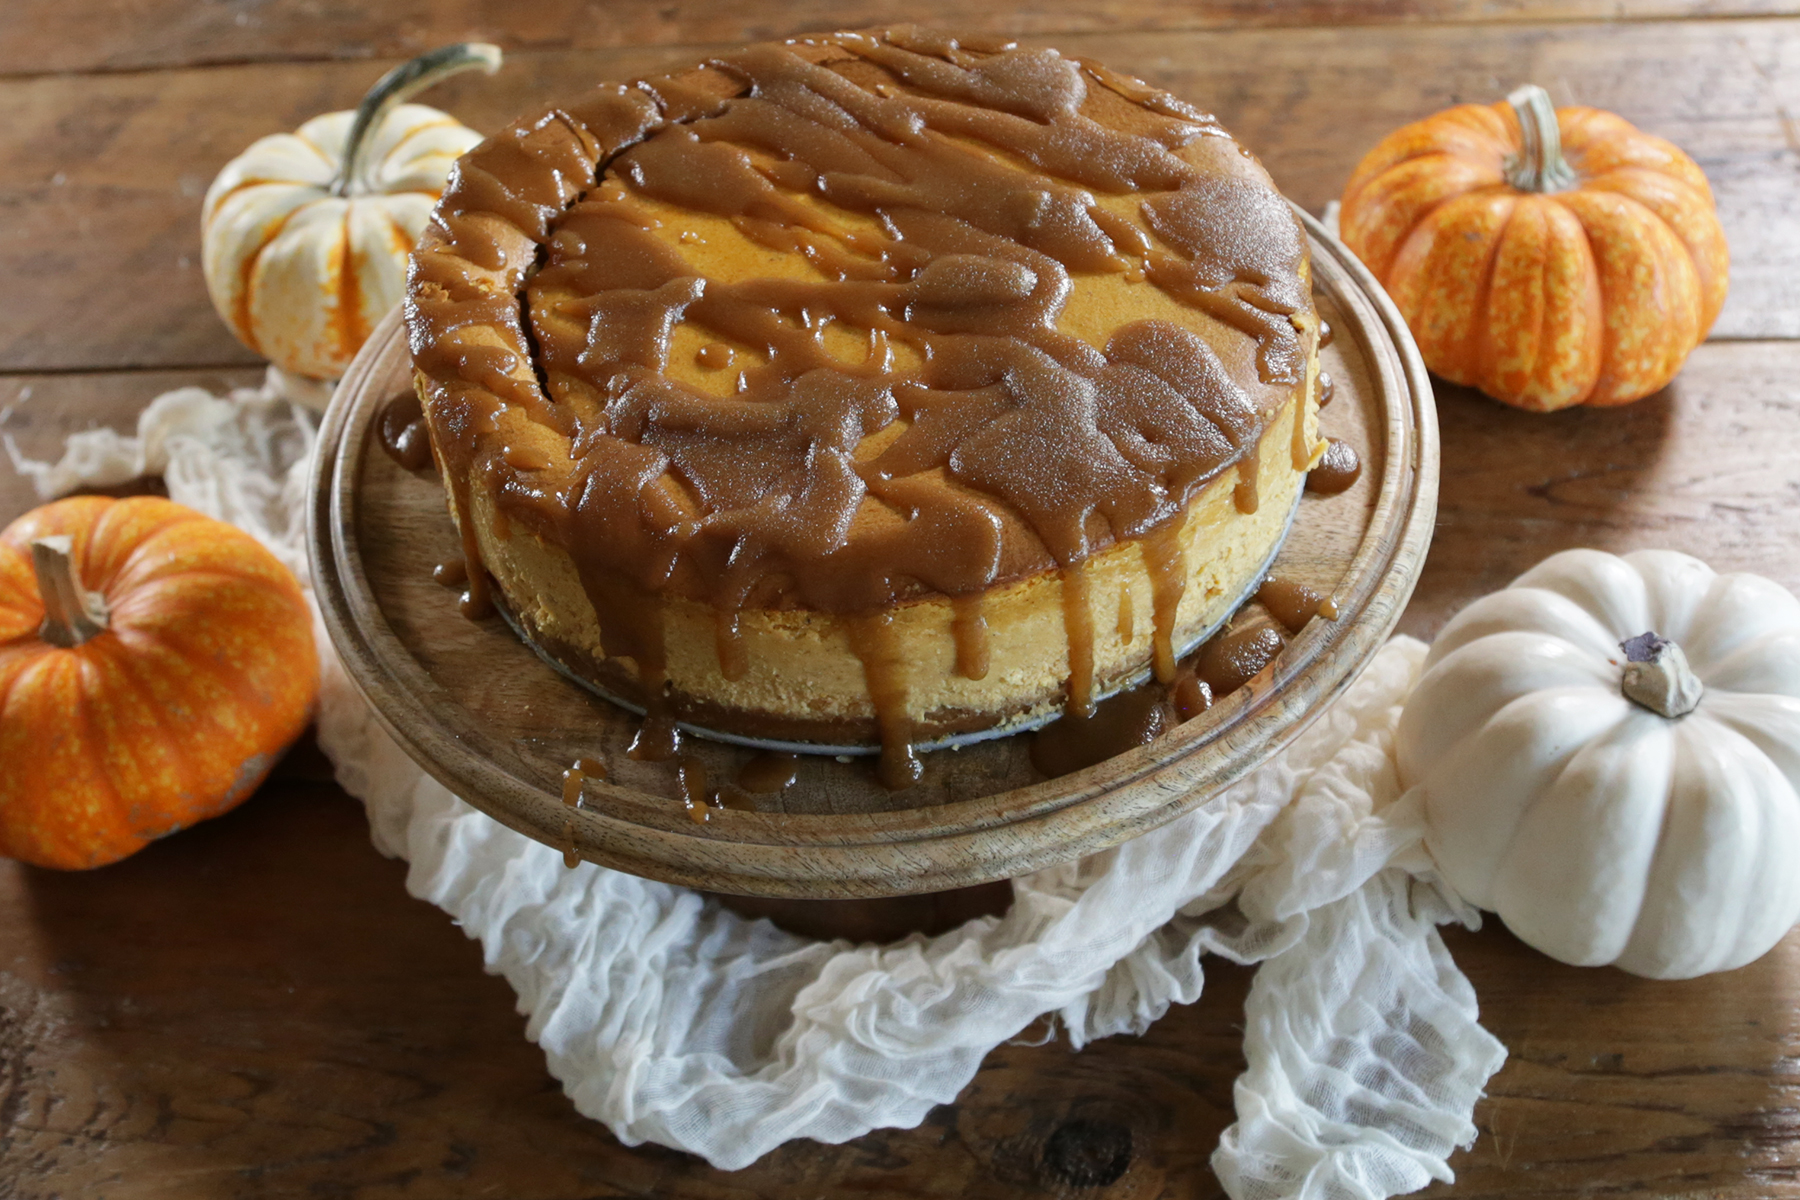 Pumpkin Cheese Cake with Brandy Caramel